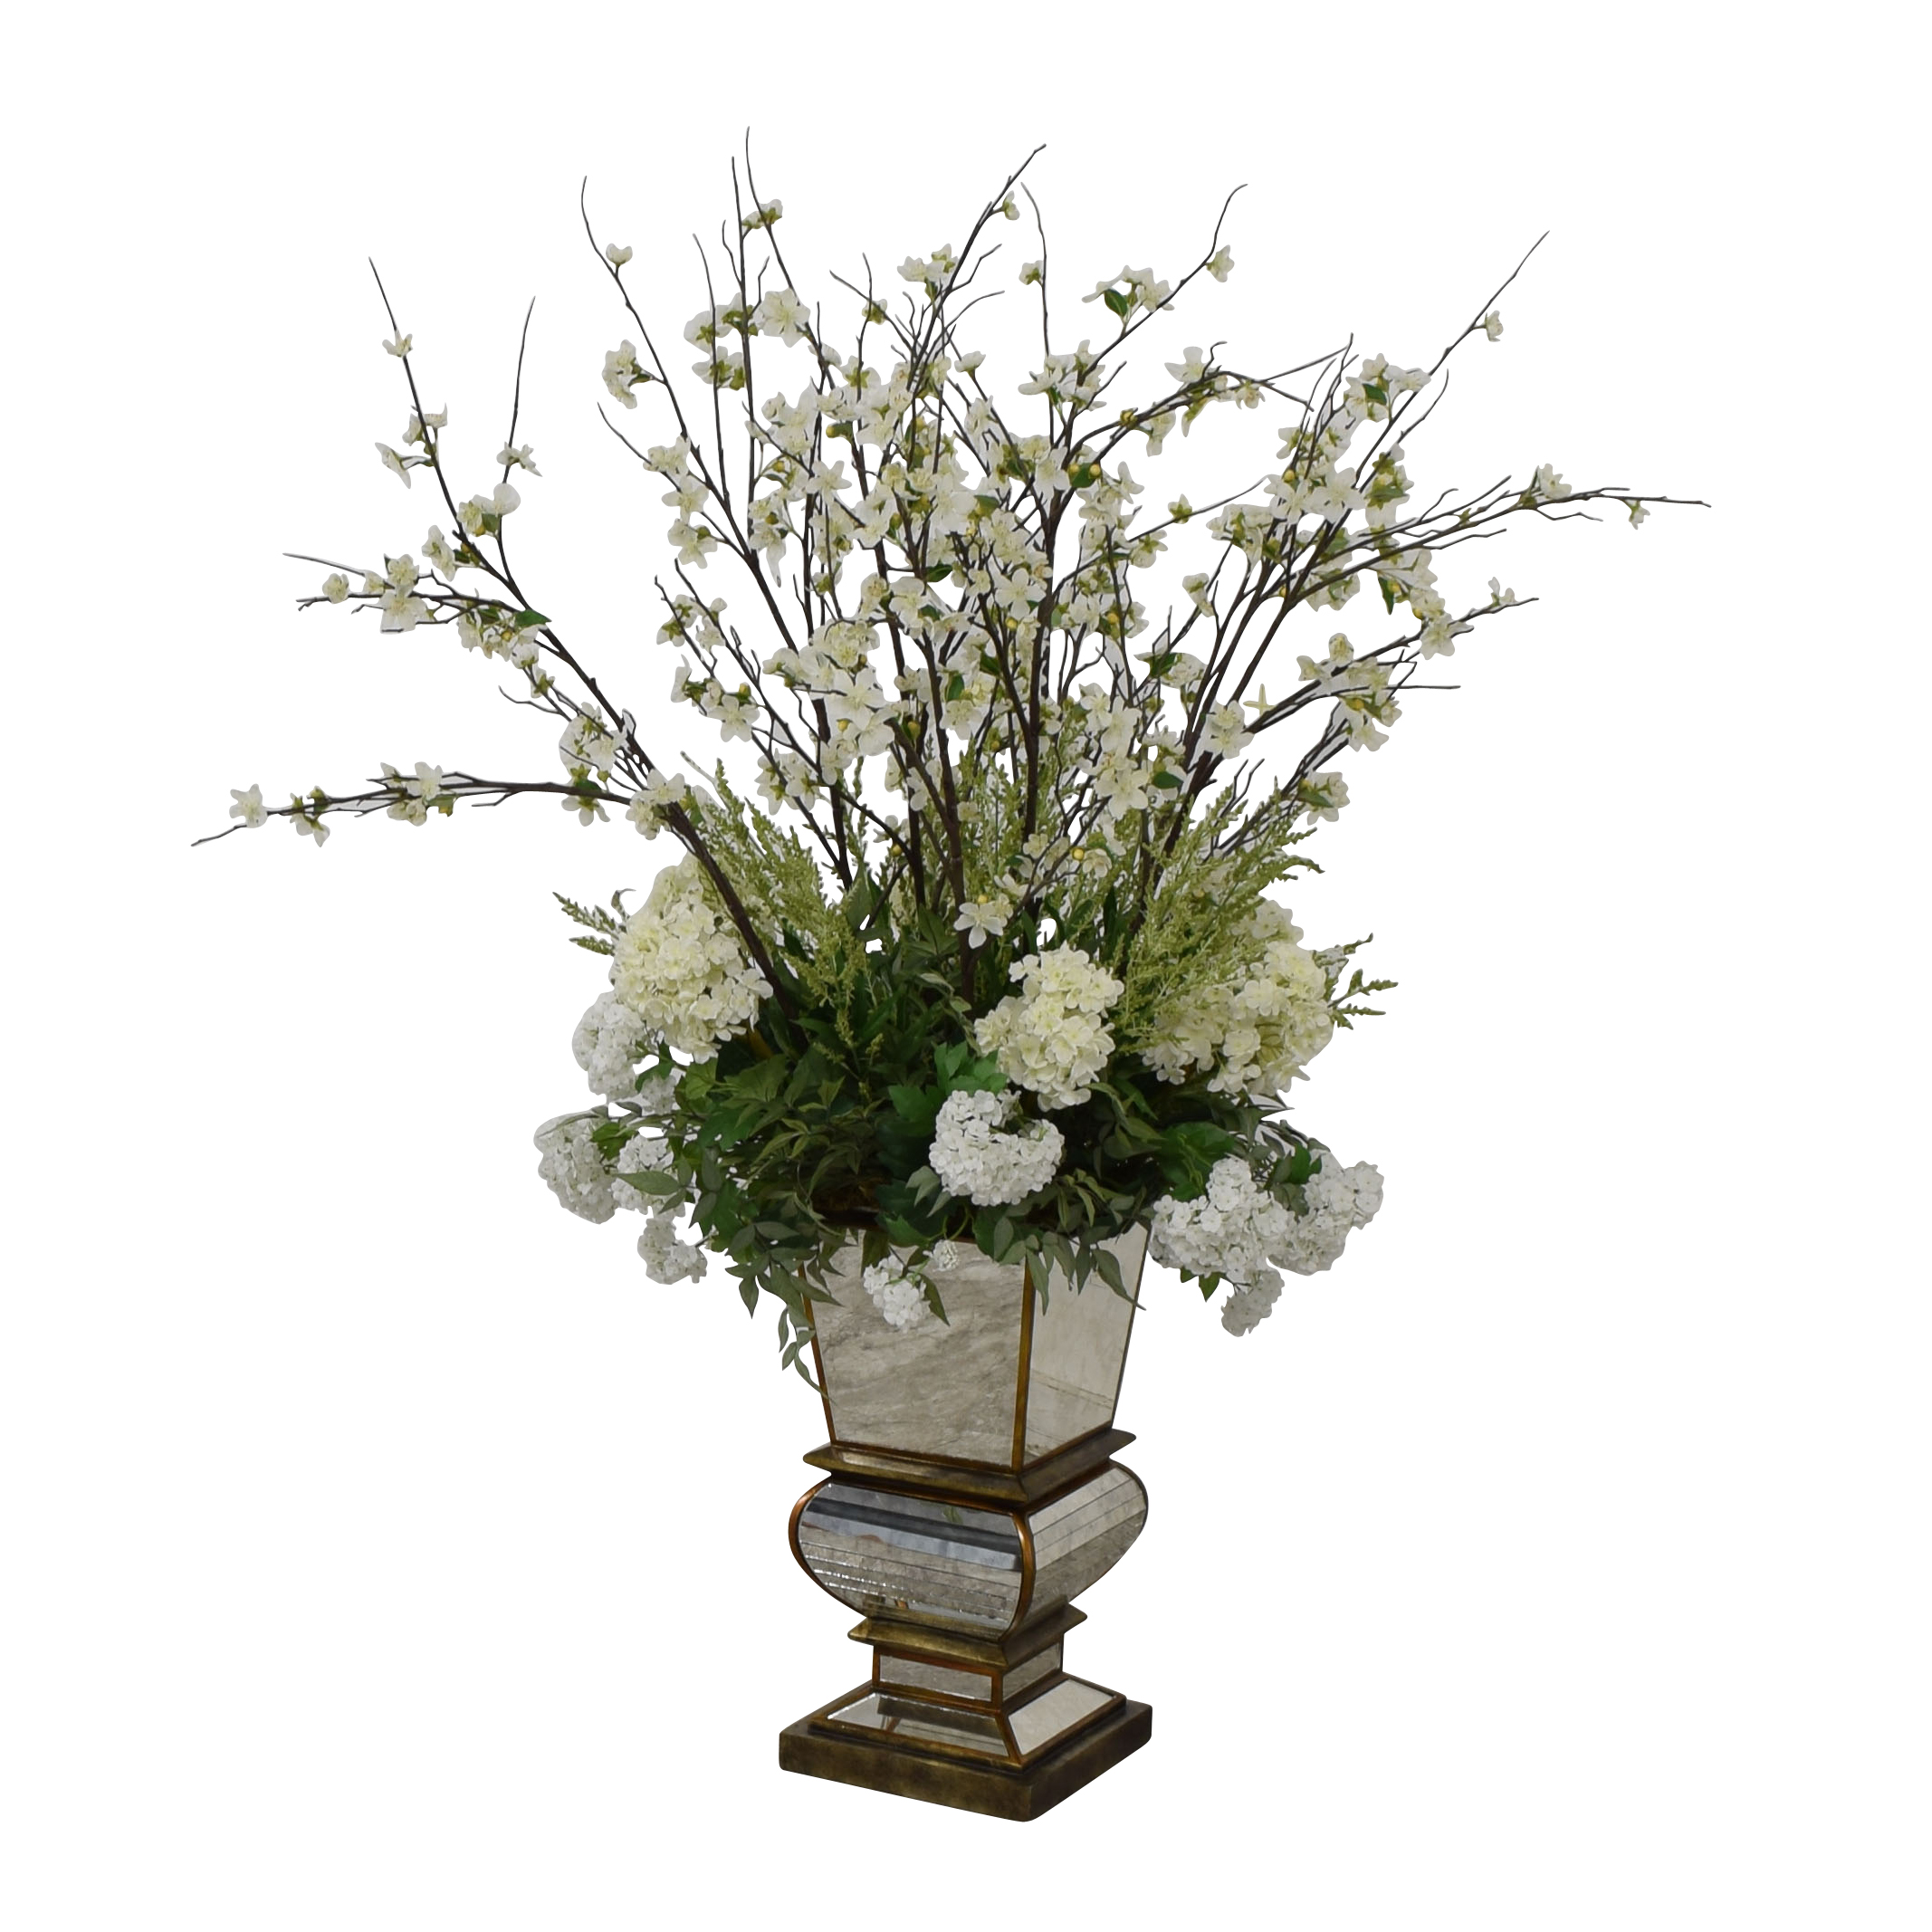 Jonathan-Richard Jonathan-Richard White Flowers in Mirrored Base on sale